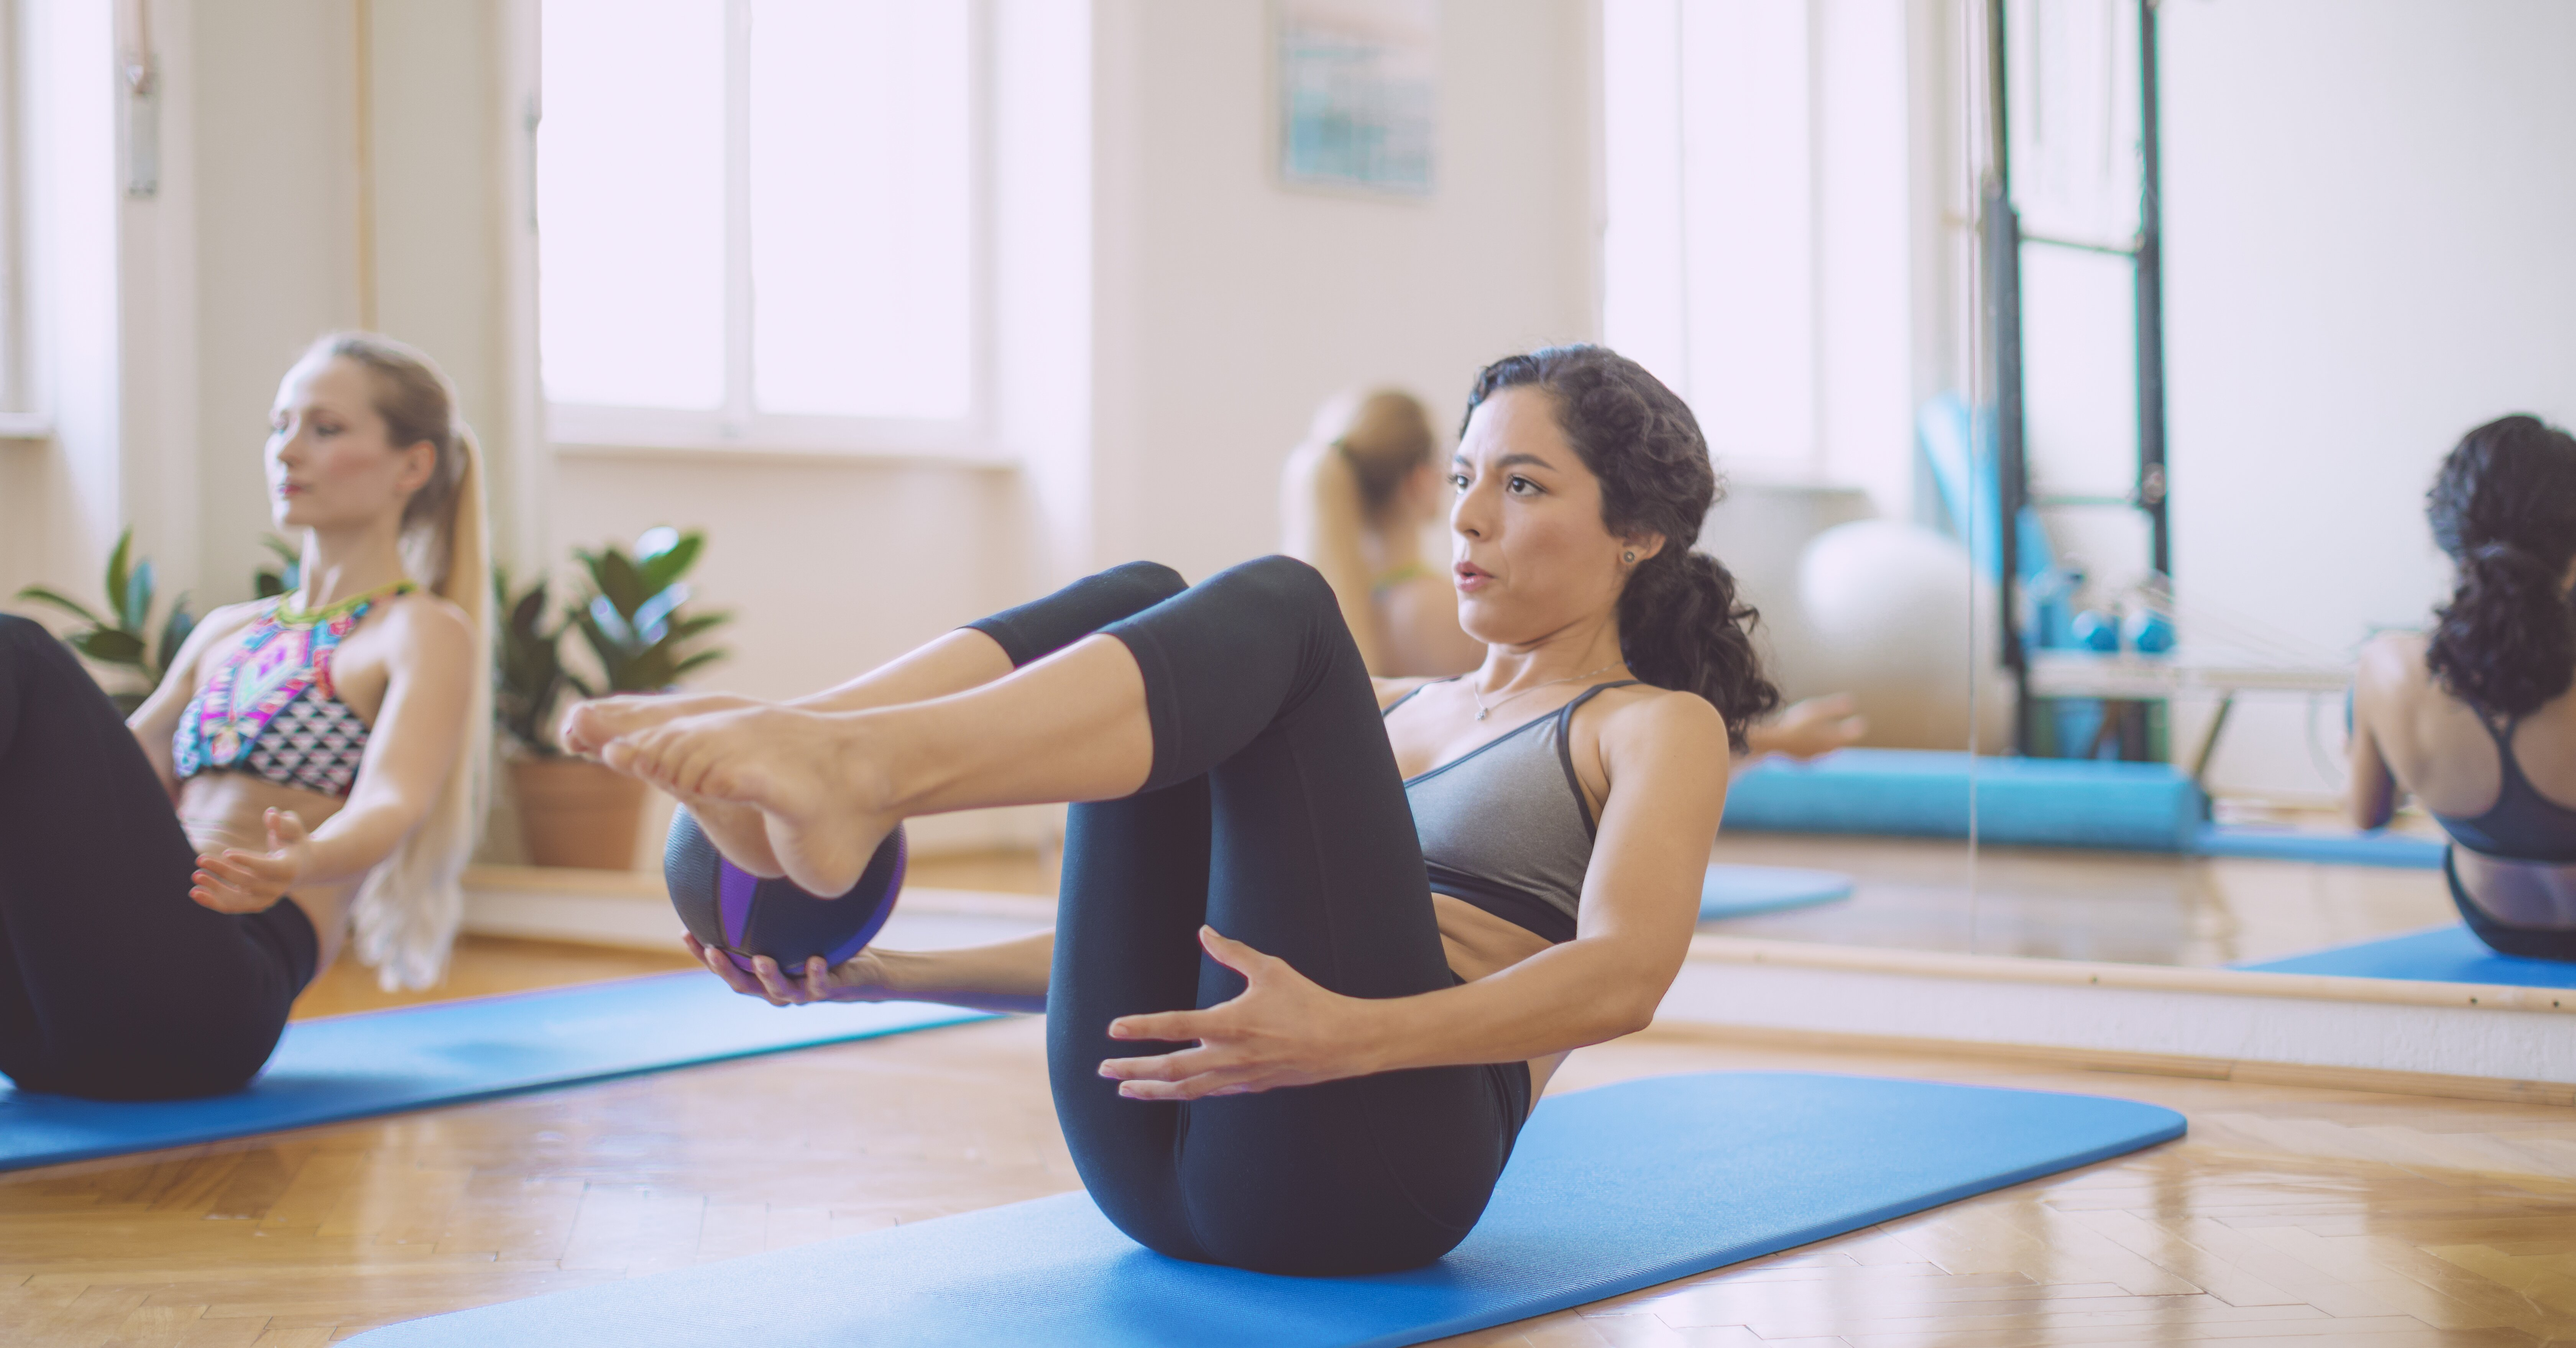 No, Pilates Mats and Yoga Mats Are Not the Same Thing